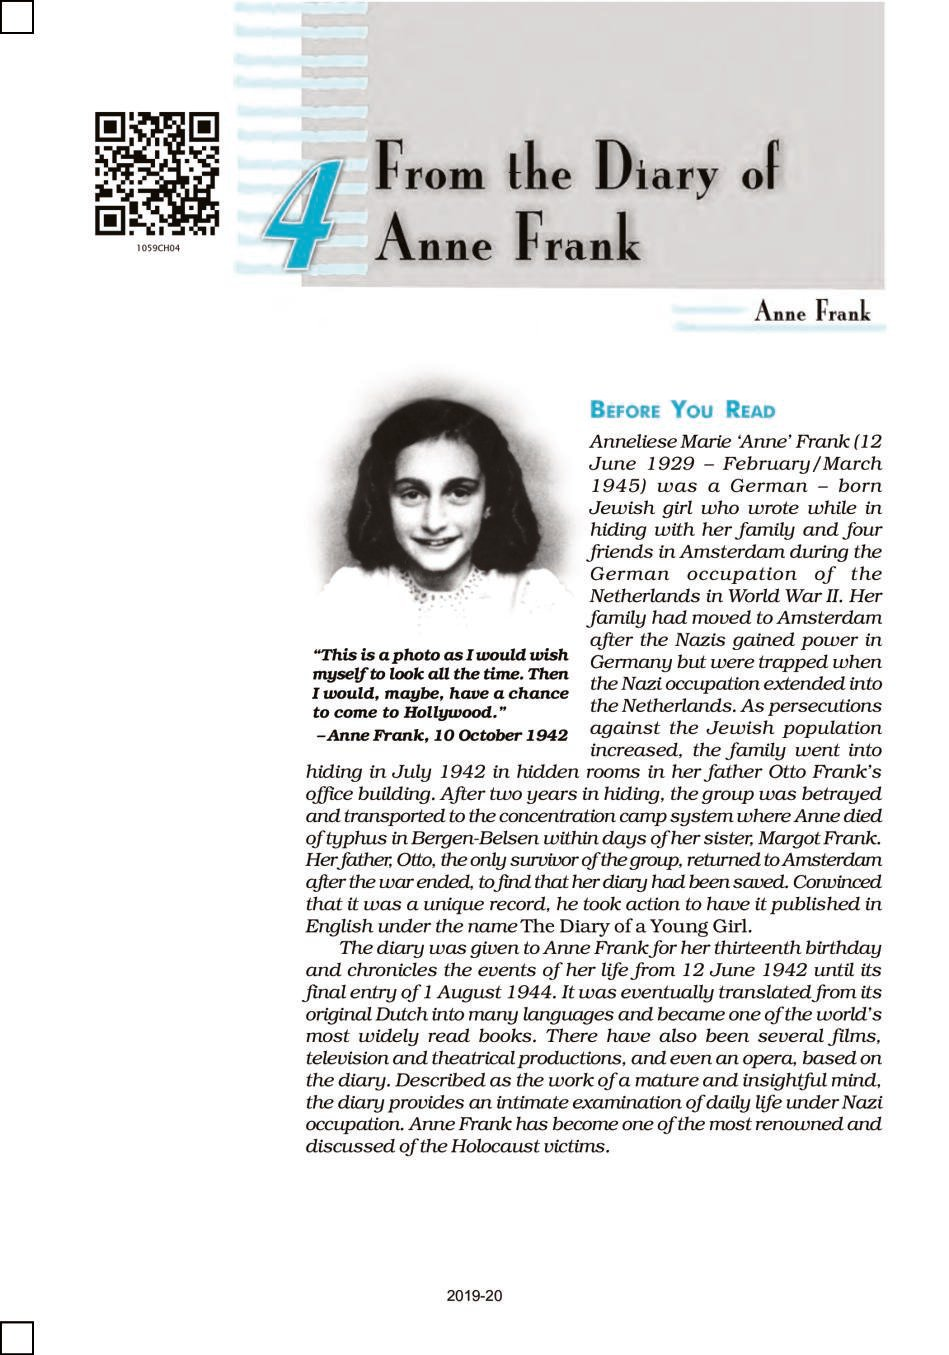 NCERT Book Class 10 English (First Flight) Chapter 4 From the Diary of Anne Frank; Amanda! - Page 1